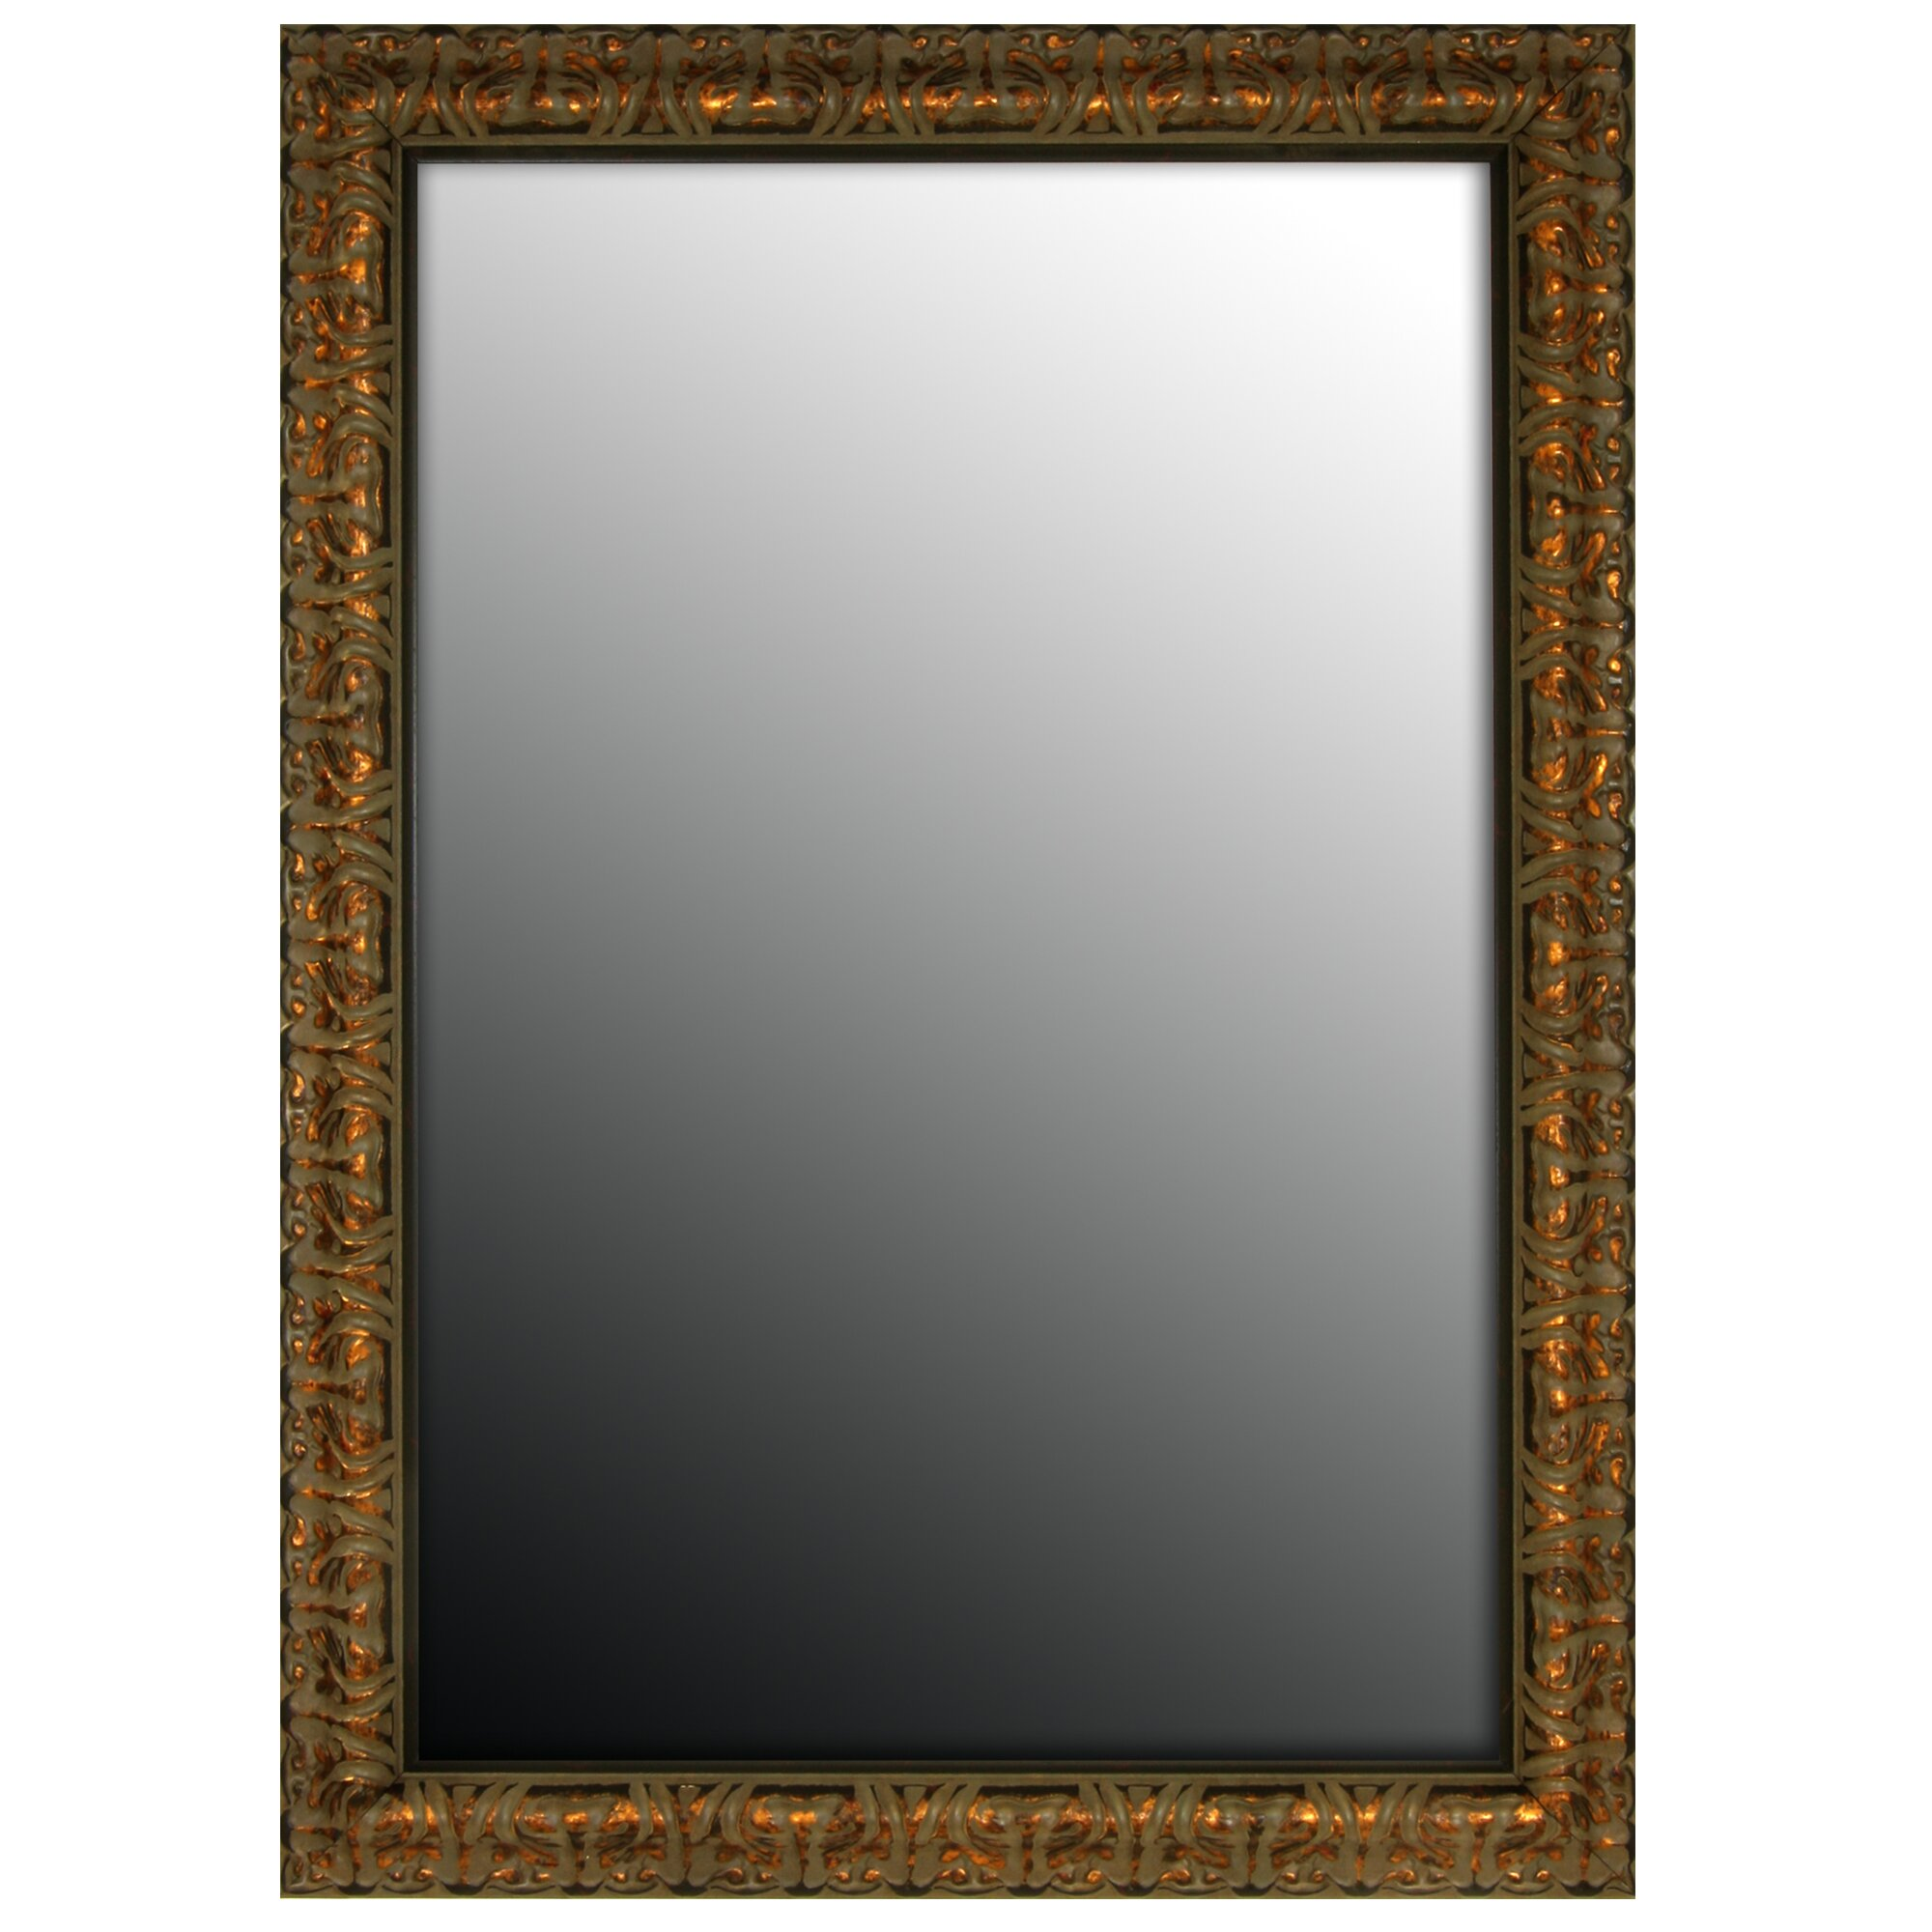 Second look mirrors olde world aged copper wall mirror for Looking mirror